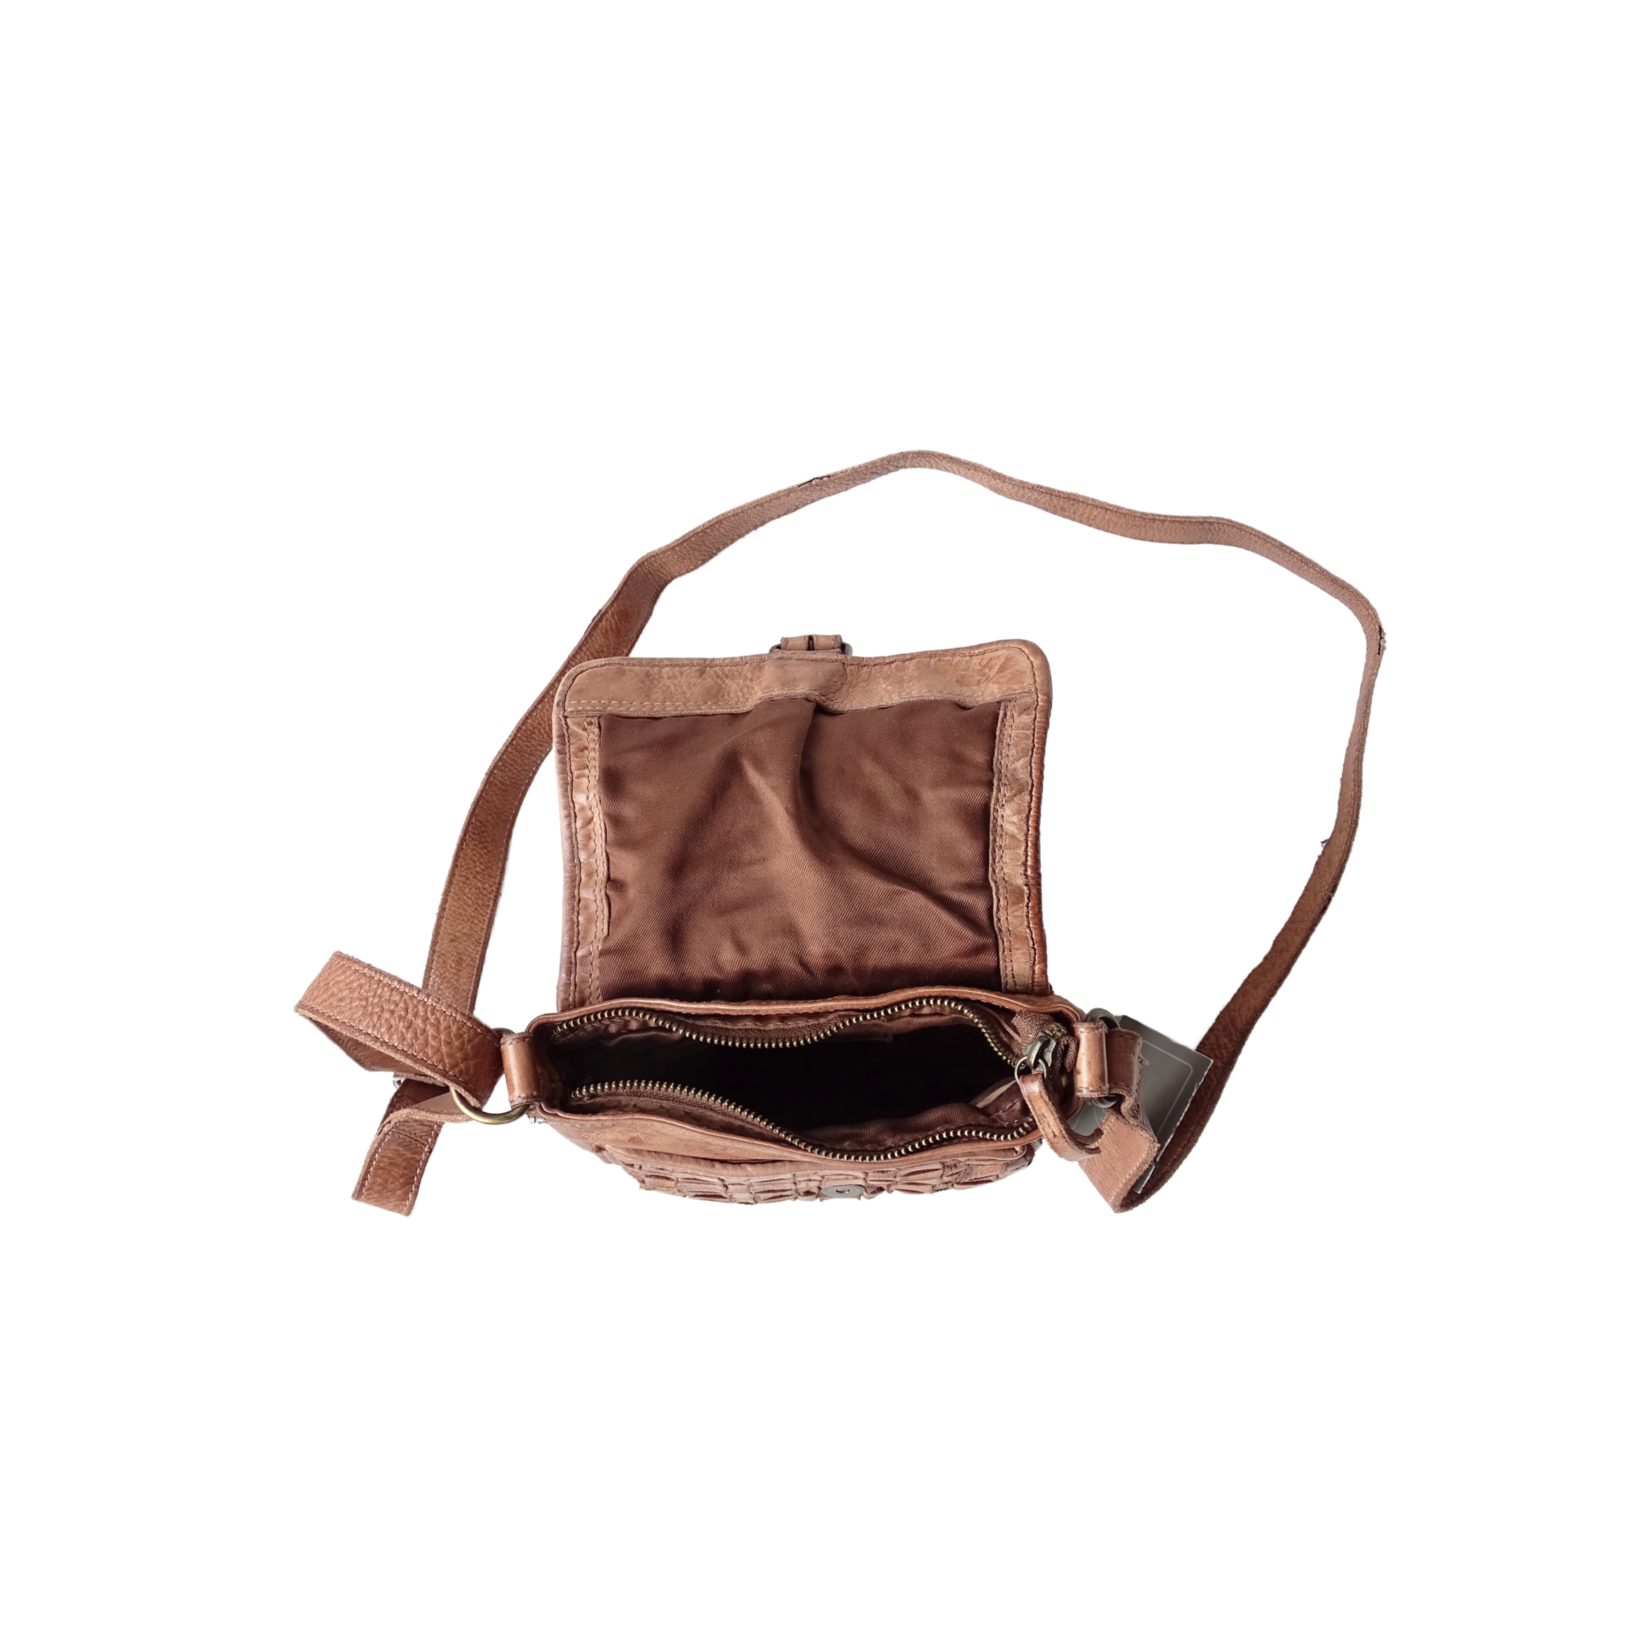 The Trend The Trend small cross-body purse taupe (4503360)